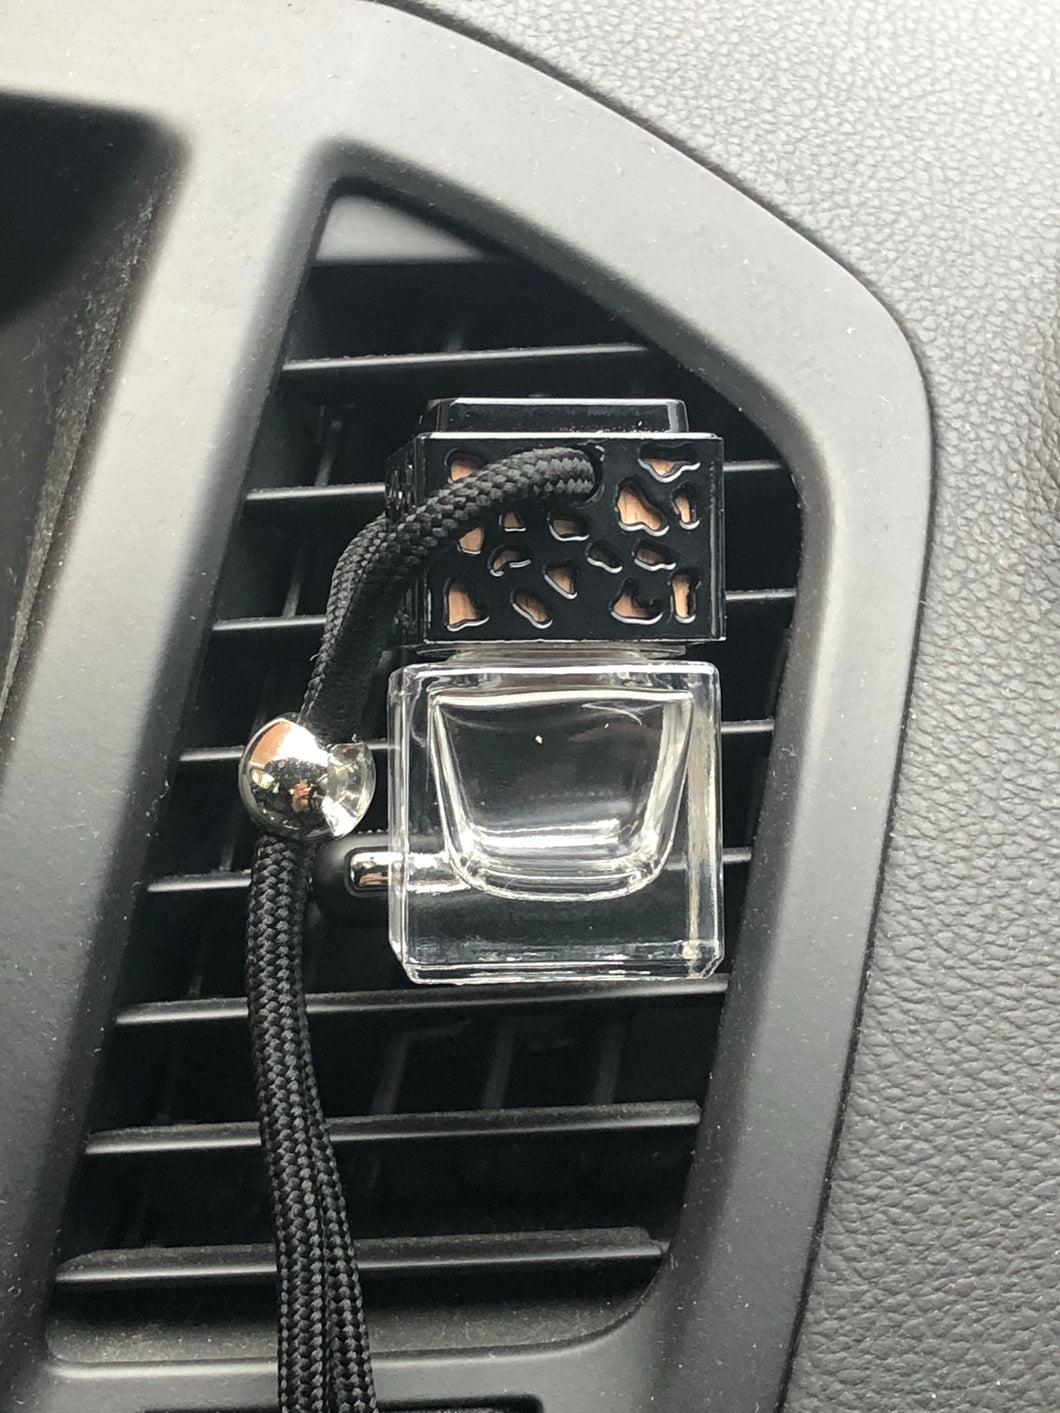 Vent Clip for Car Air freshener